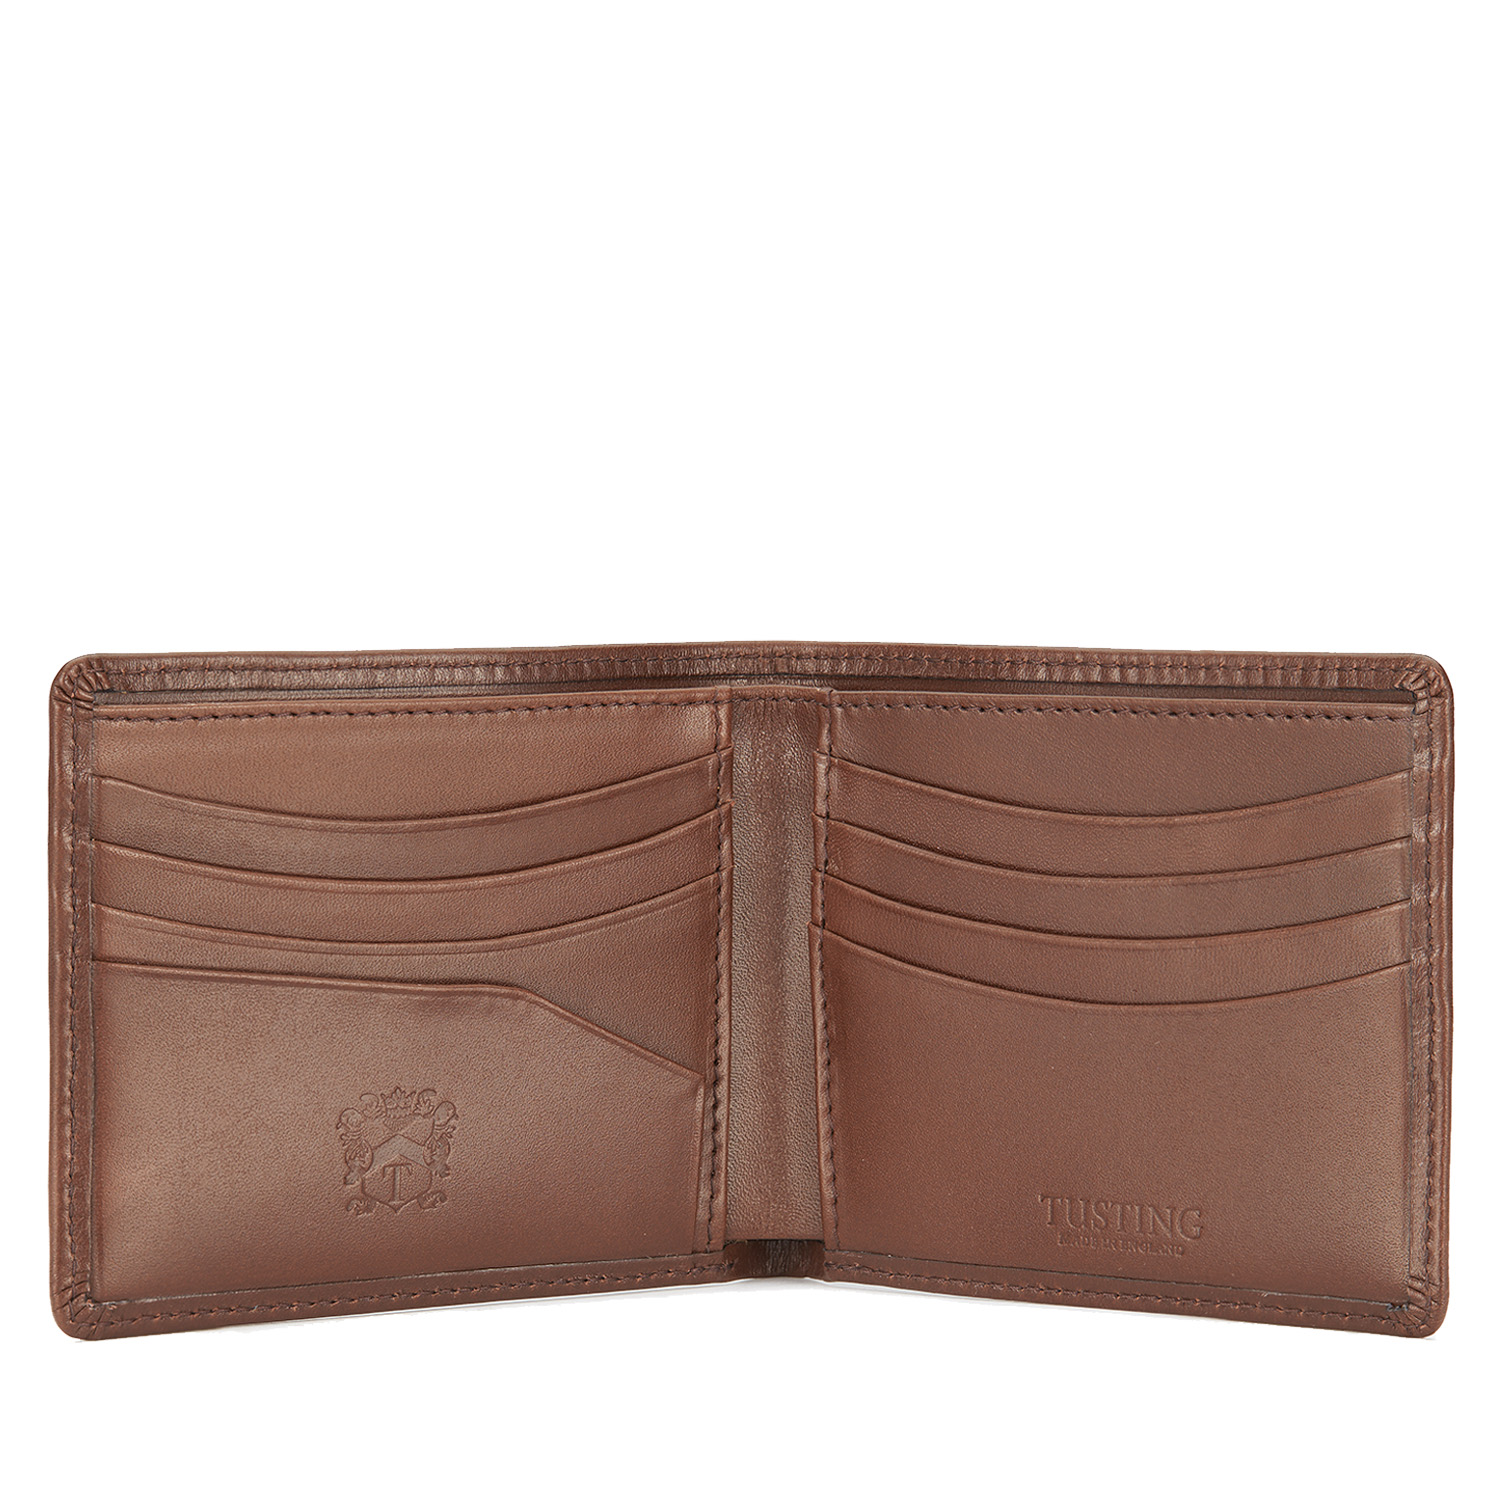 Tusting Dark Tan Leather Hip Wallet